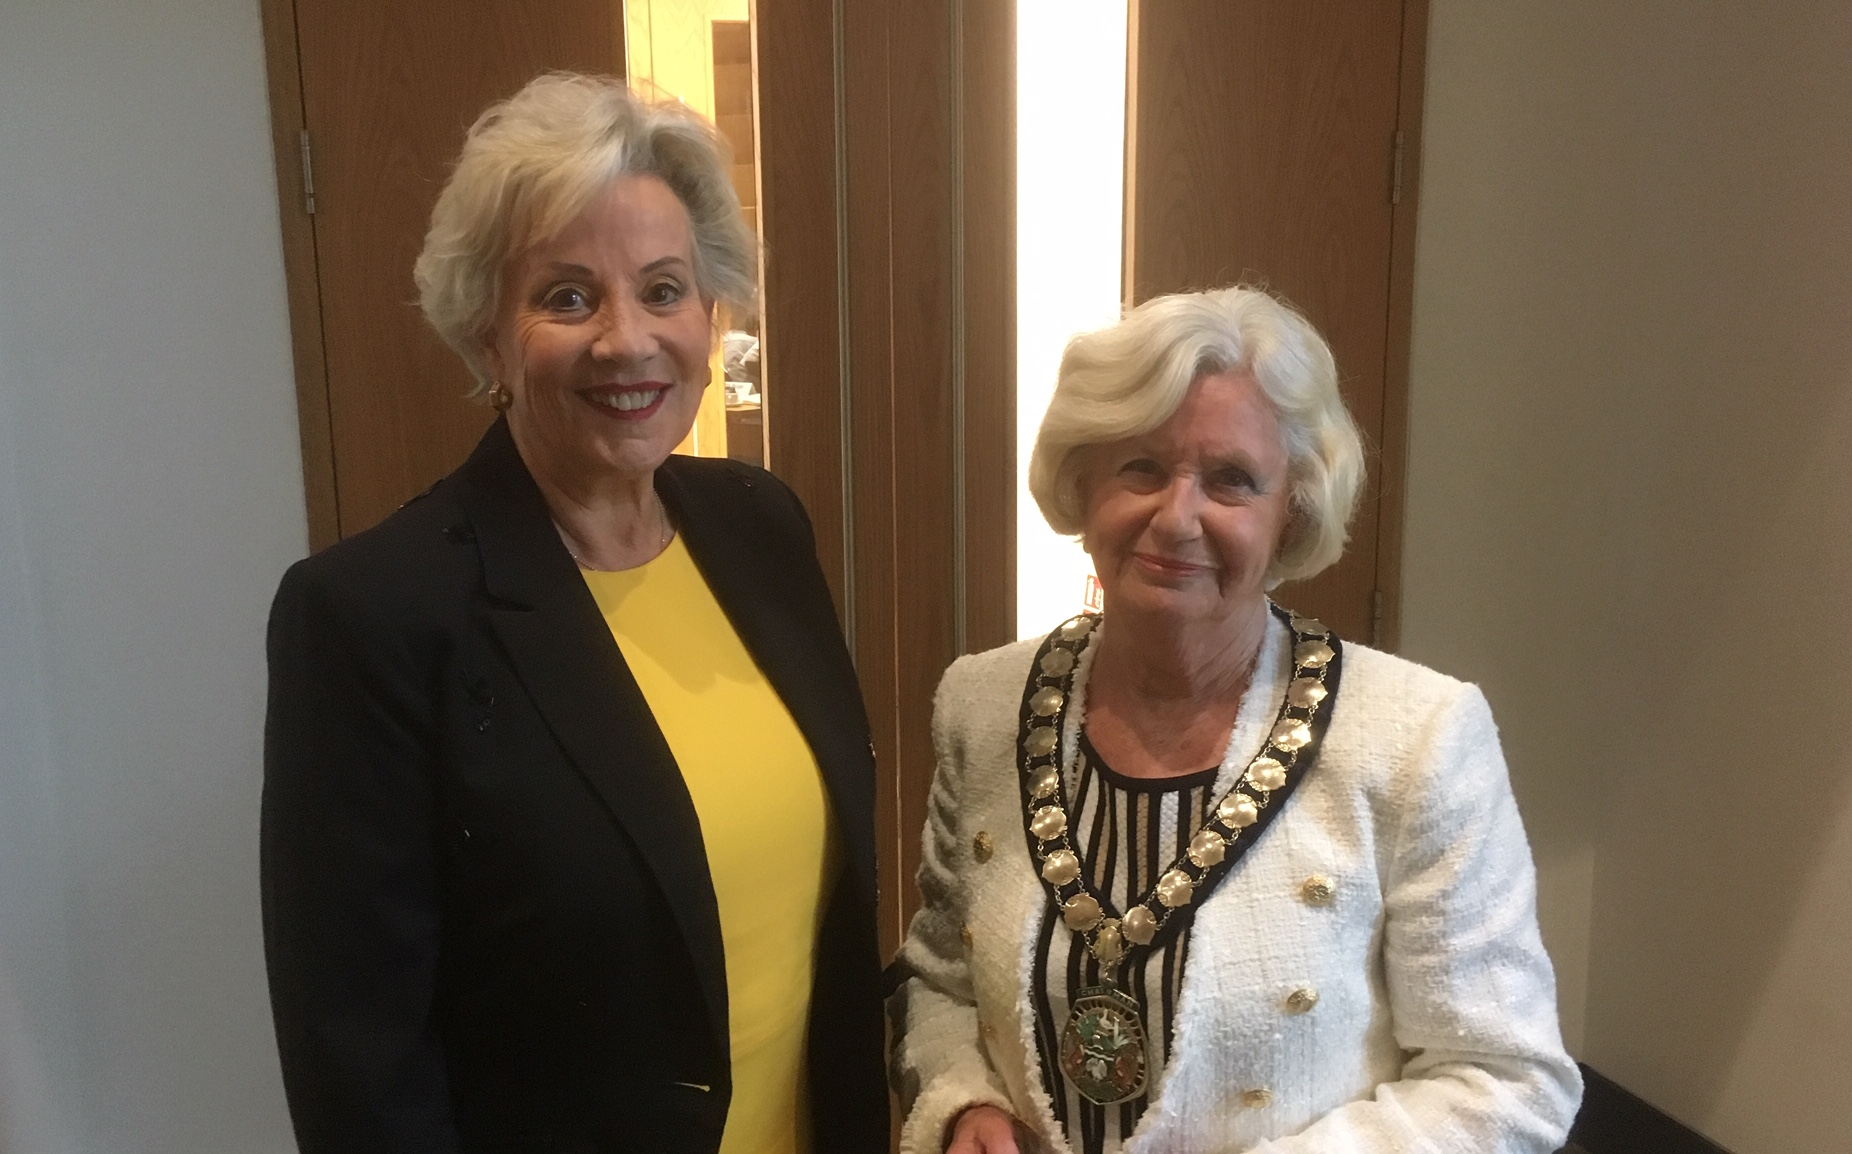 Cllr Sue Renshell outgoing chairman AVDC with new chairman Cllr Judy Brandis